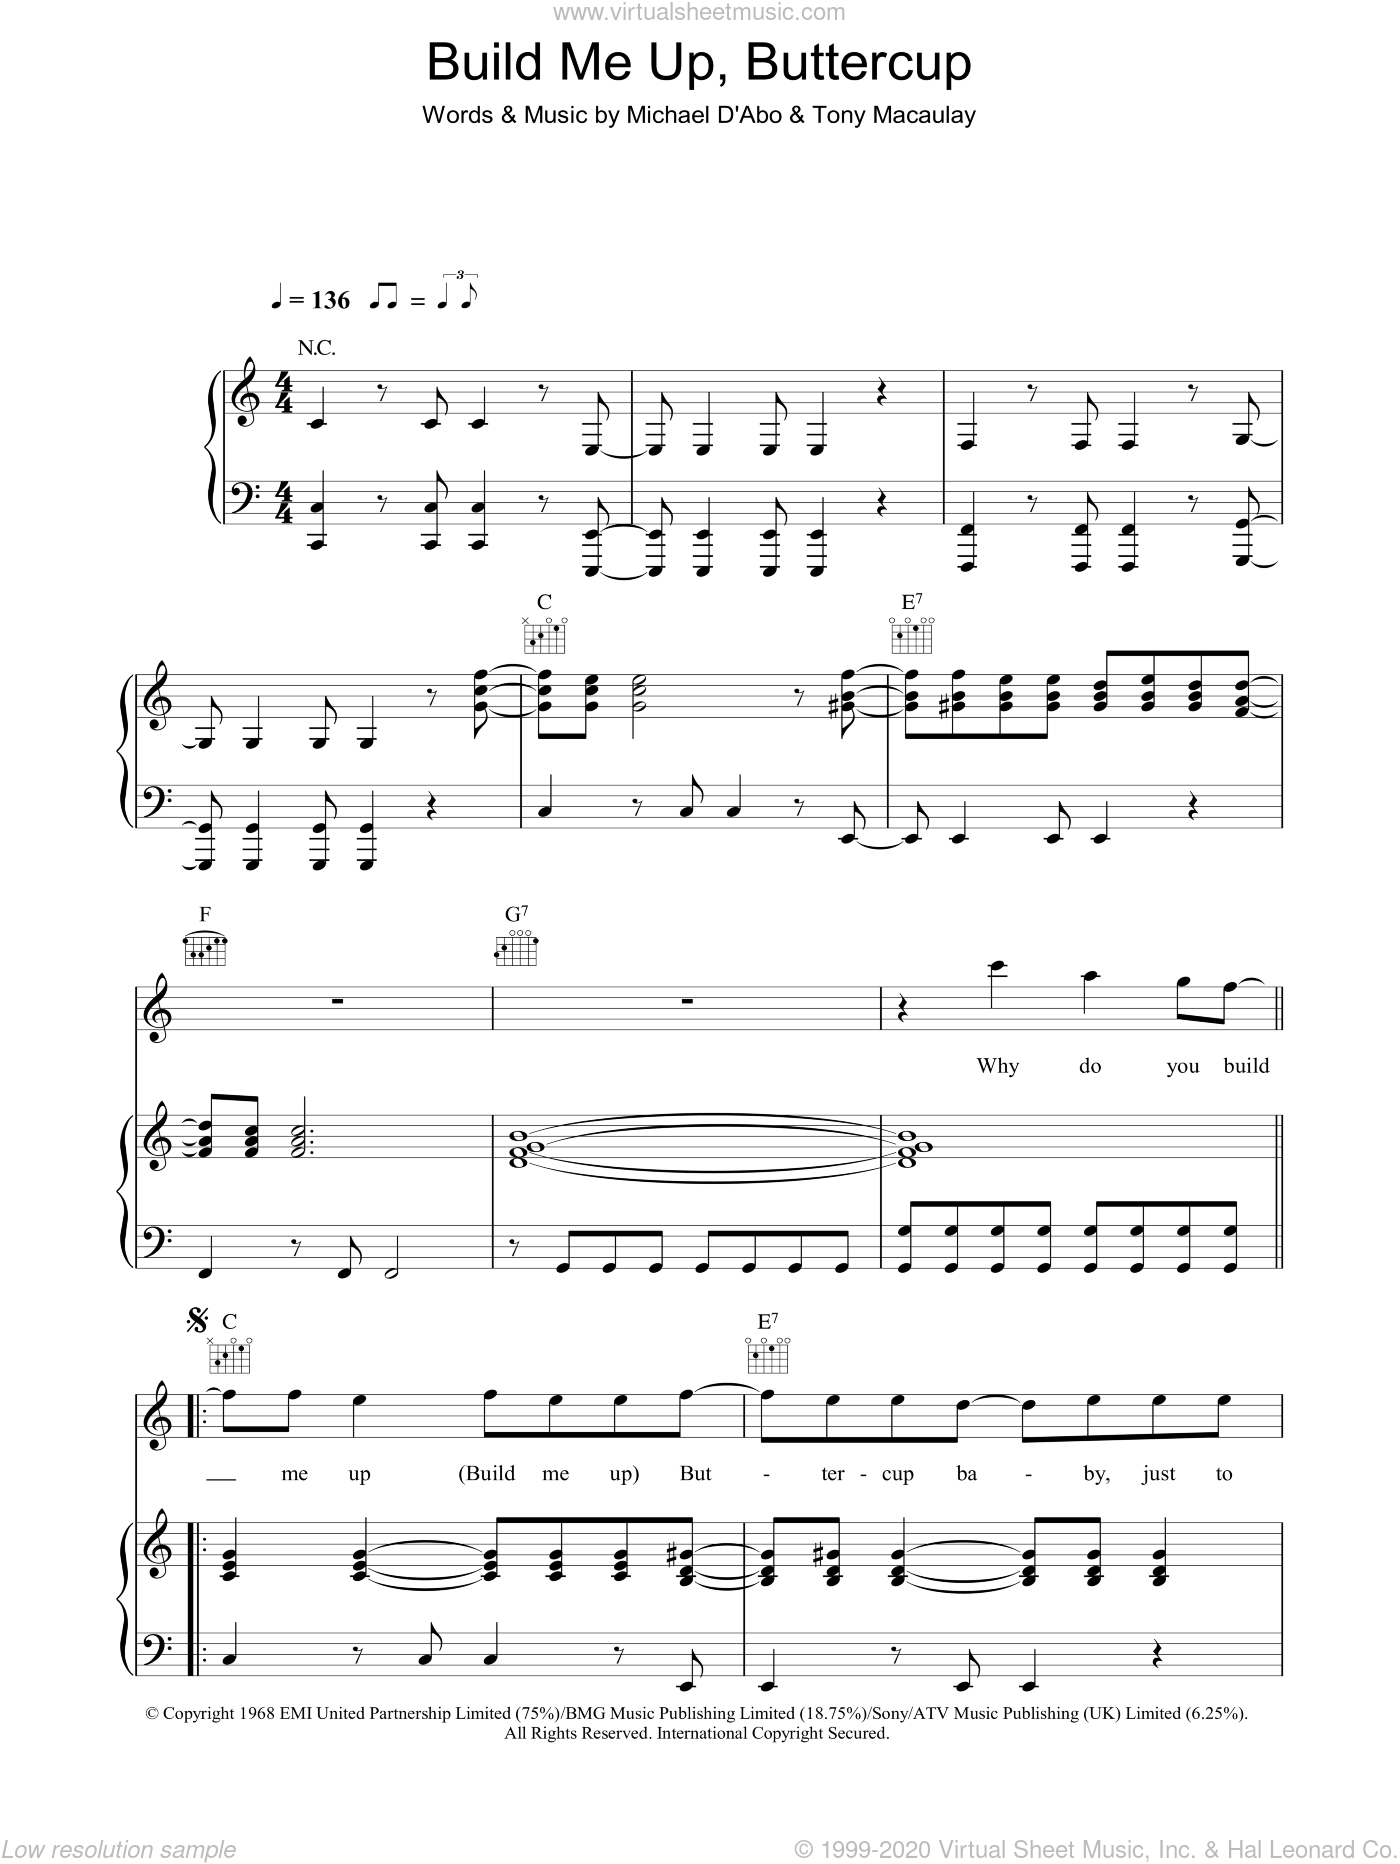 Build Me Up, Buttercup sheet music for voice, piano or guitar by The Foundations and Tony Macaulay, intermediate skill level